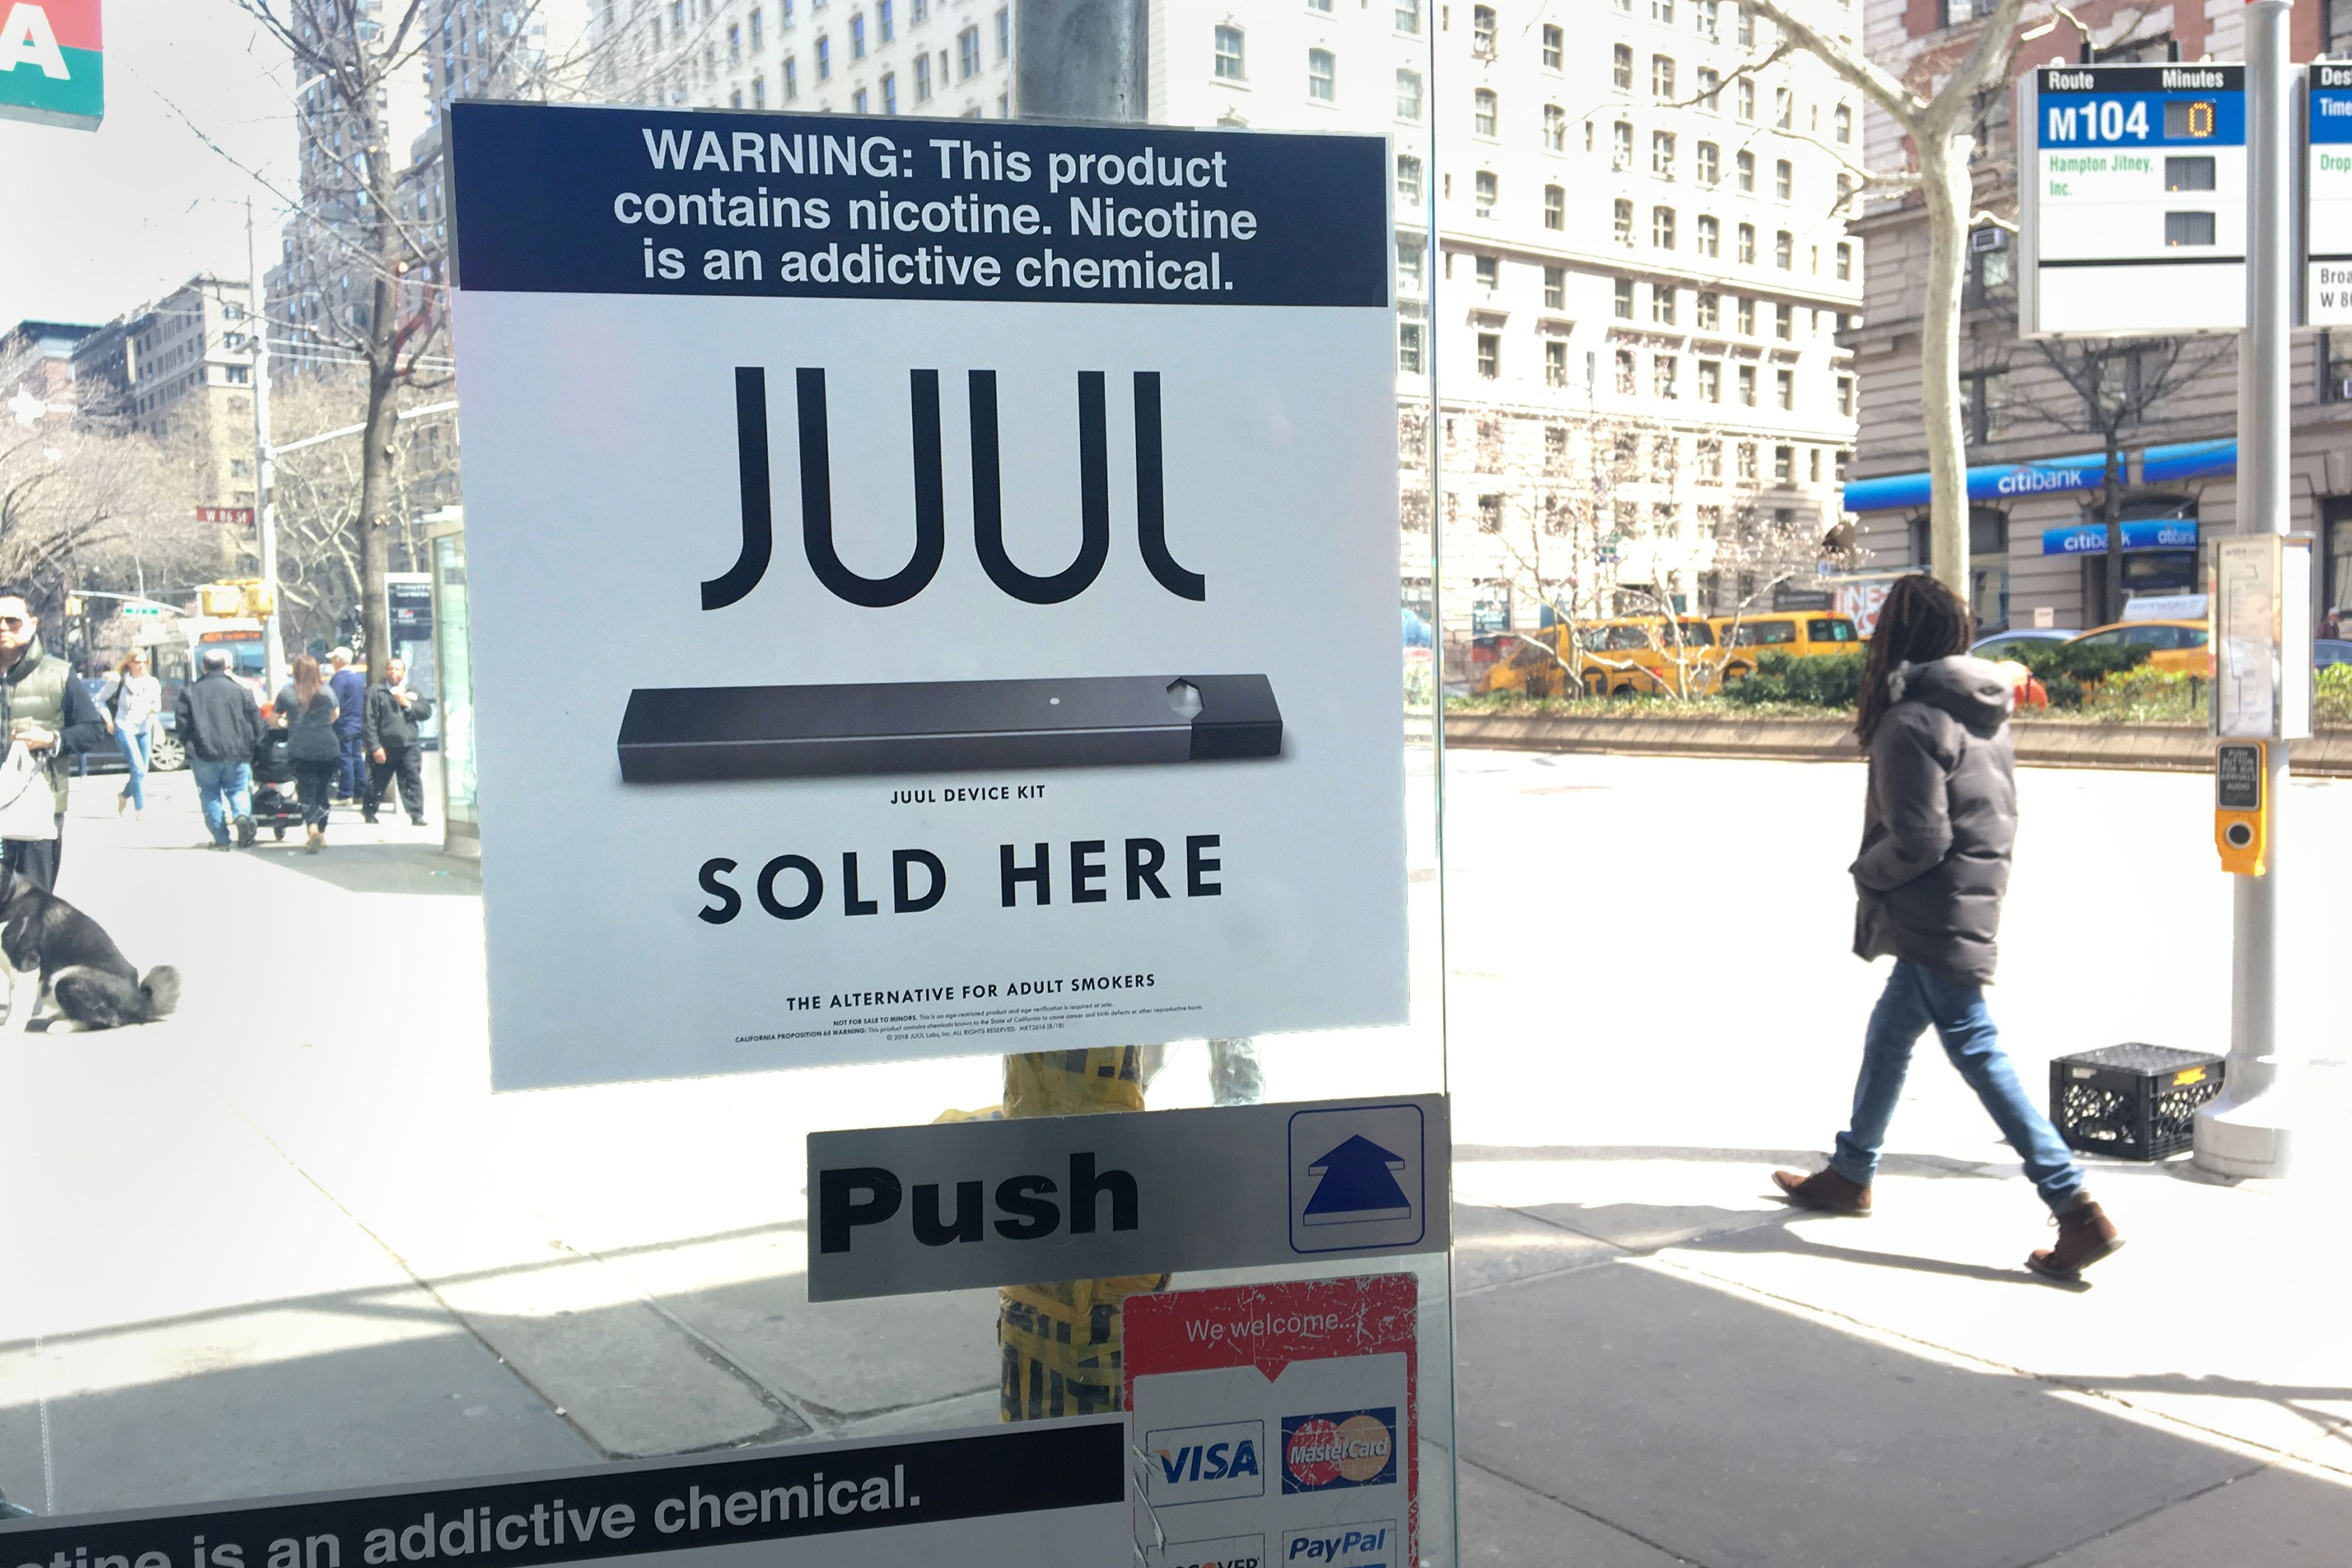 Altria CEO Howard Willard grilled on Juul e-cigarette investment